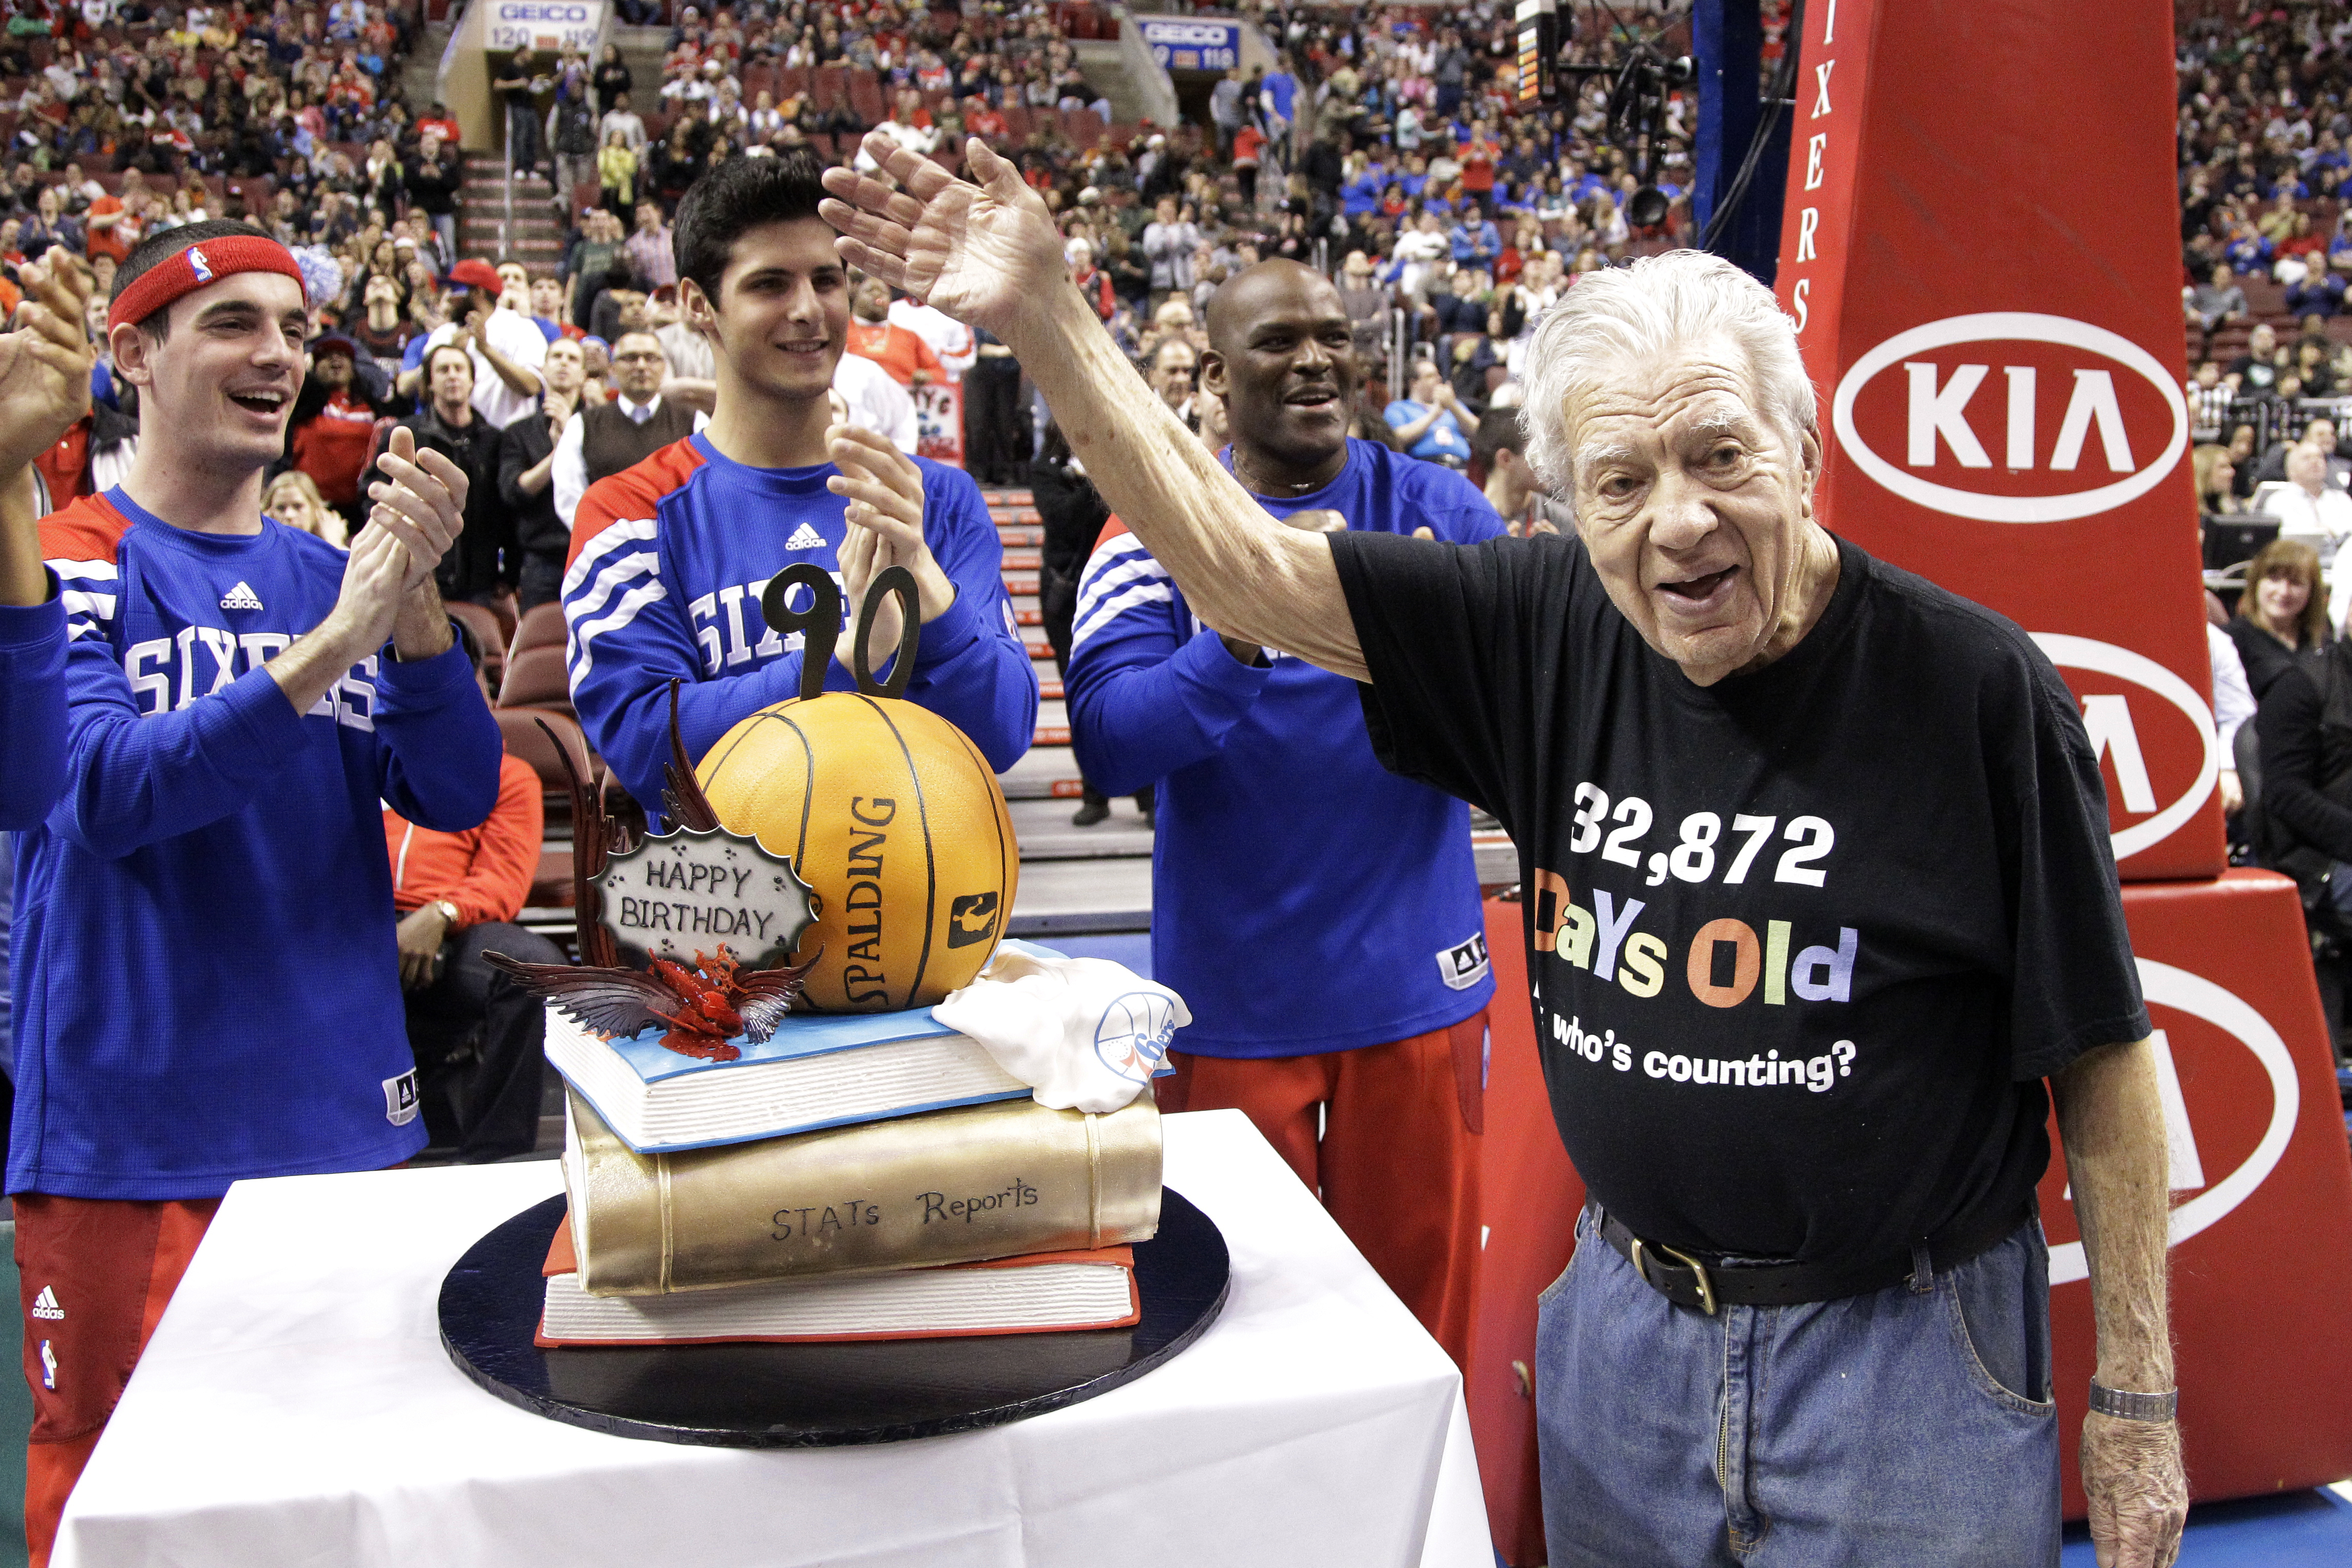 Philadelphia 76ers stats keeper Harvey Pollack waves during a celebration of his 90th birthday during an NBA basketball game between the Philadelphia 76ers and the Utah Jazz, March 9, 2012, in Philadelphia.